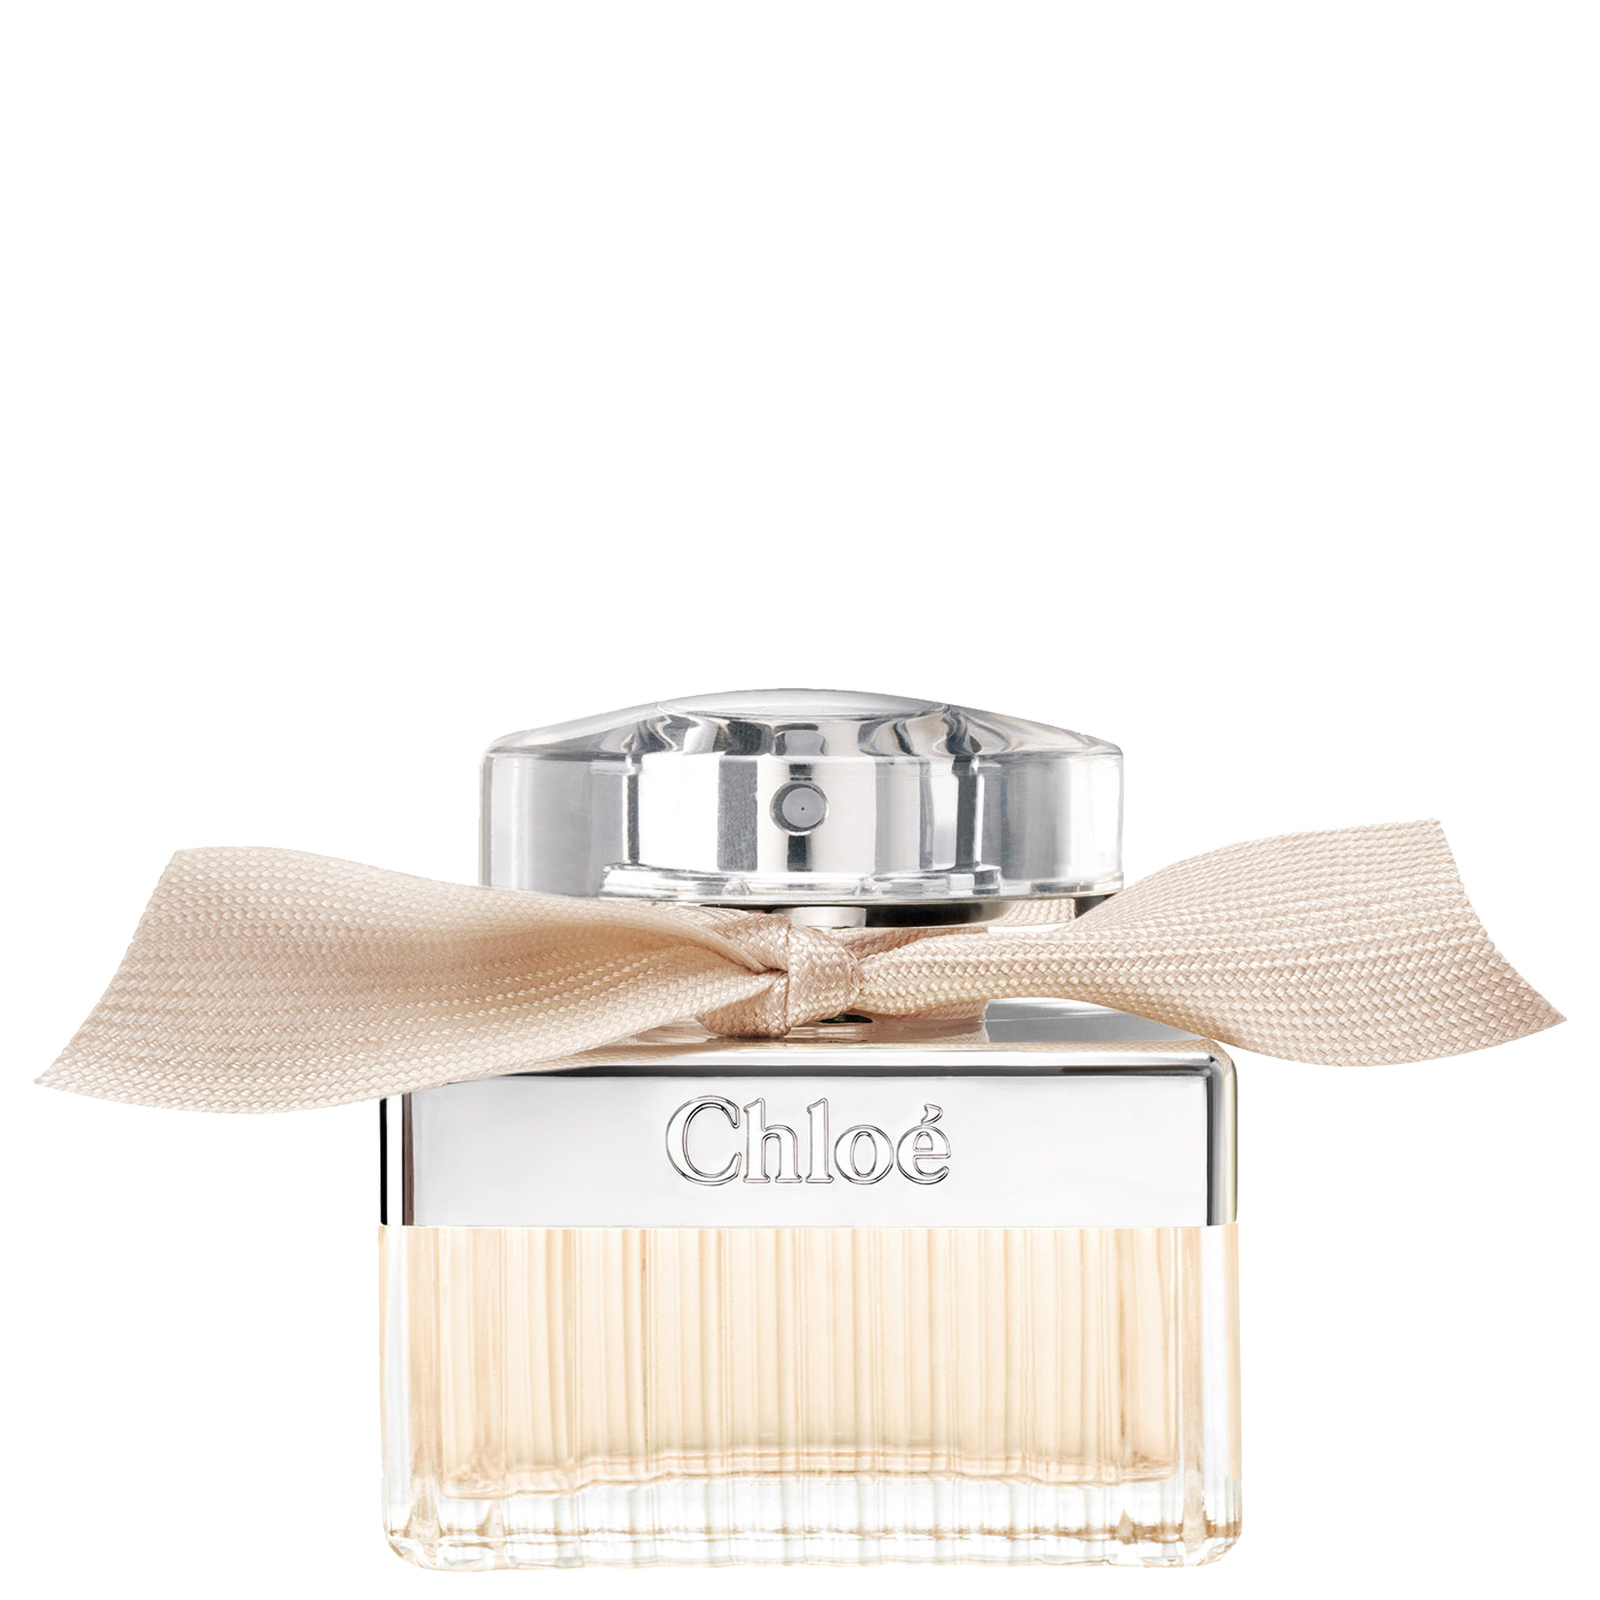 Chloé For Her Eau de Parfum Spray 30ml